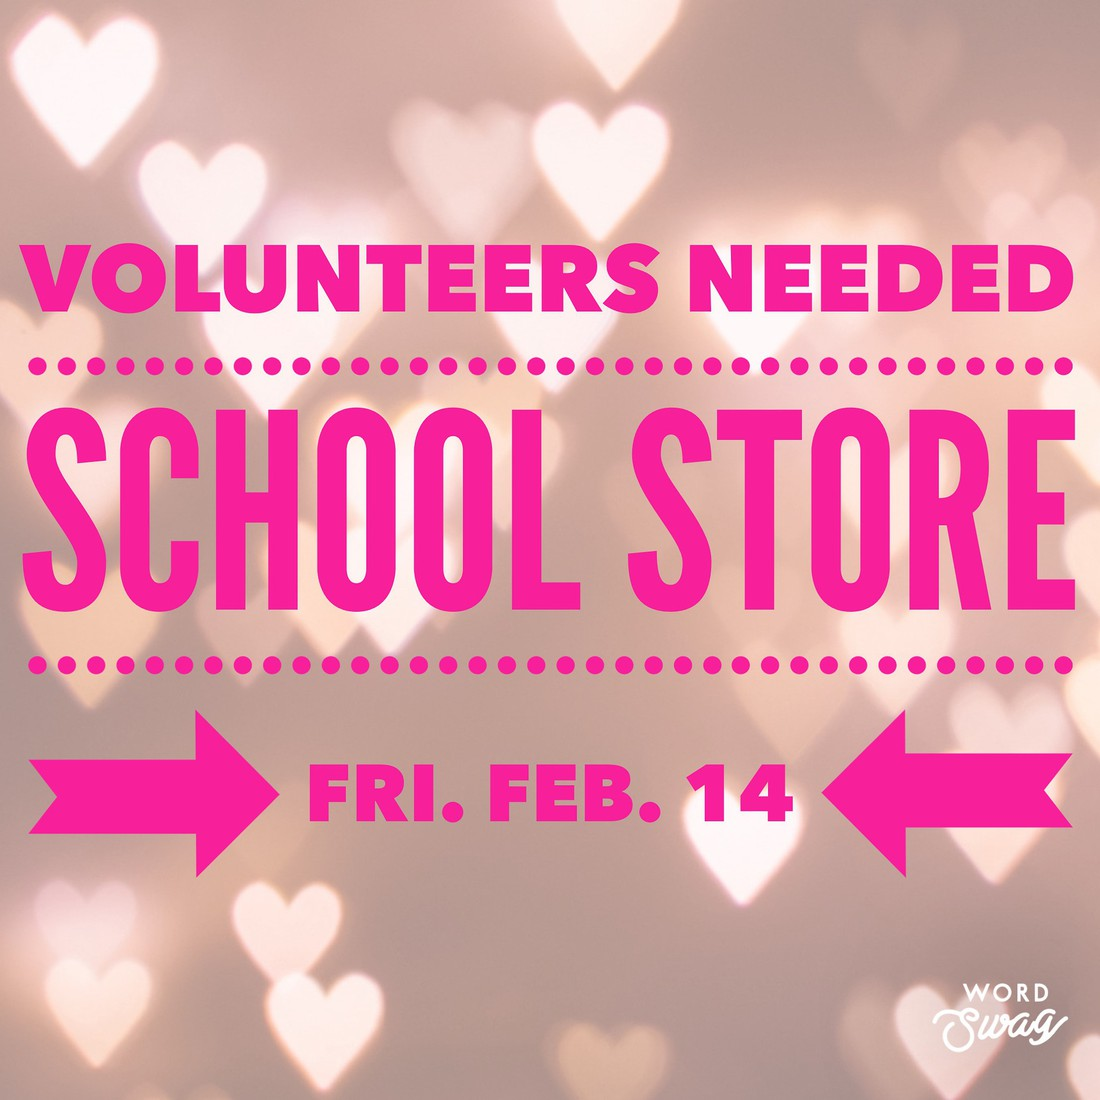 hearts-Volunteers Needed, school Store, Friday February 14th